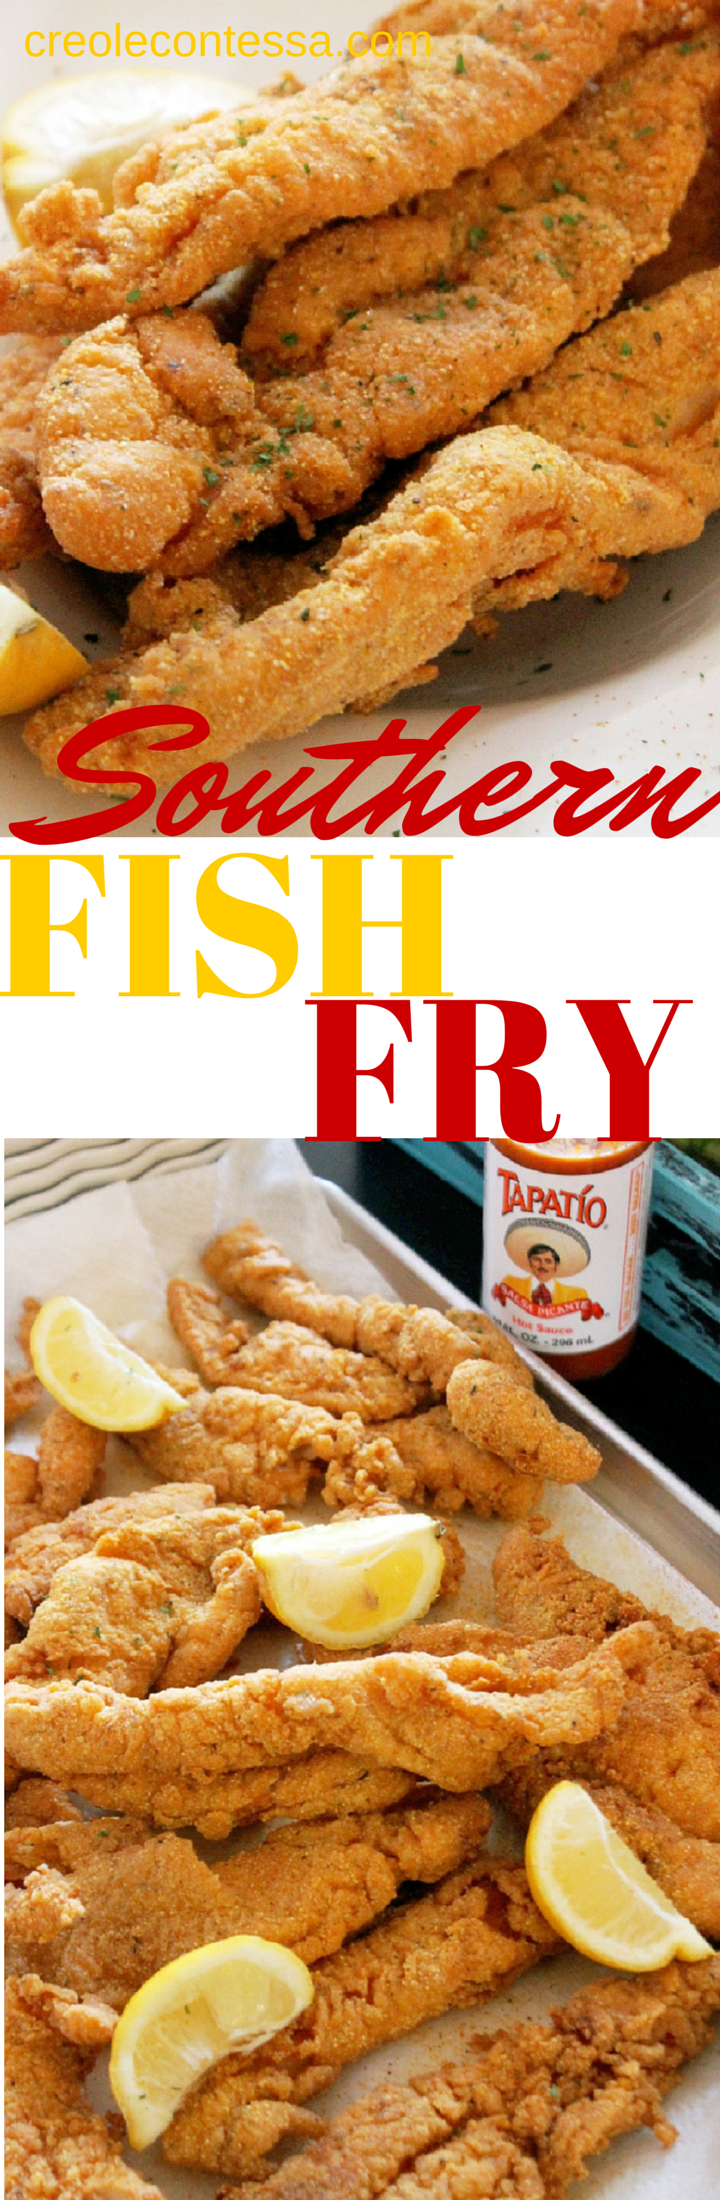 Fish Fry-Creole Contessa  (she has such insanely good recipes!!)